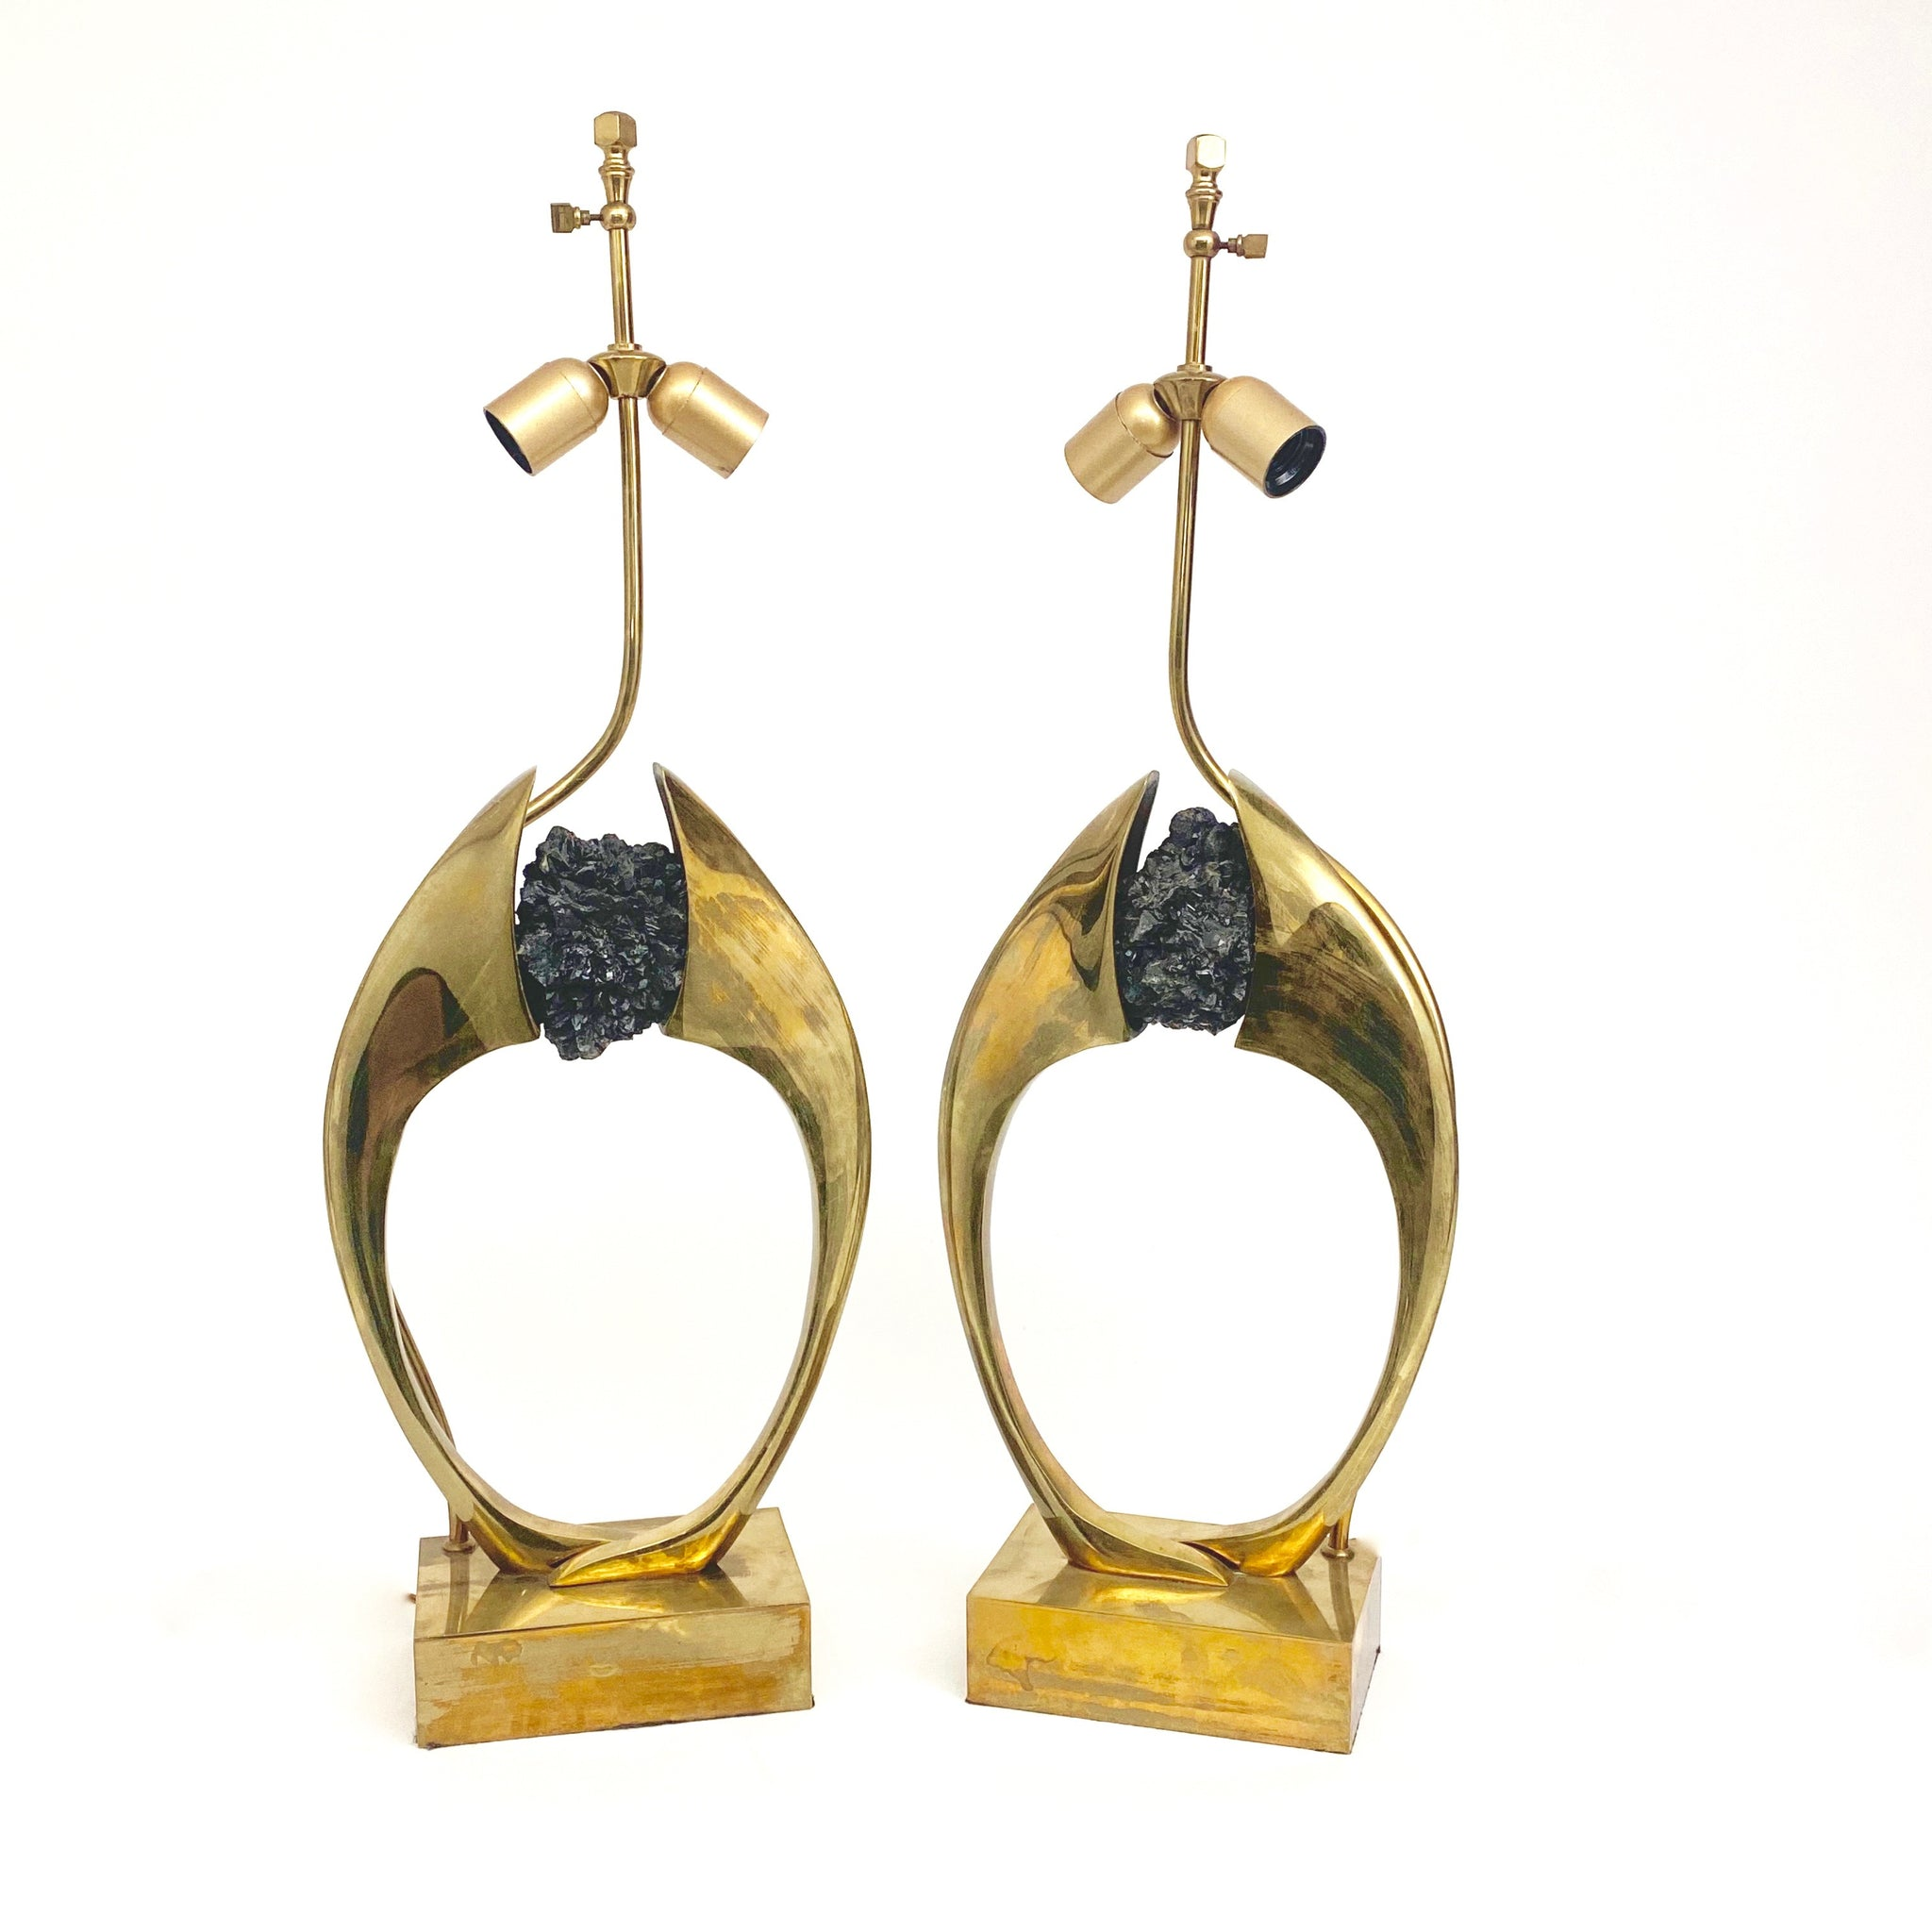 Fabulous of pair of sculptural bronze and black crystal  lamps by Willy Daro circa 1970.